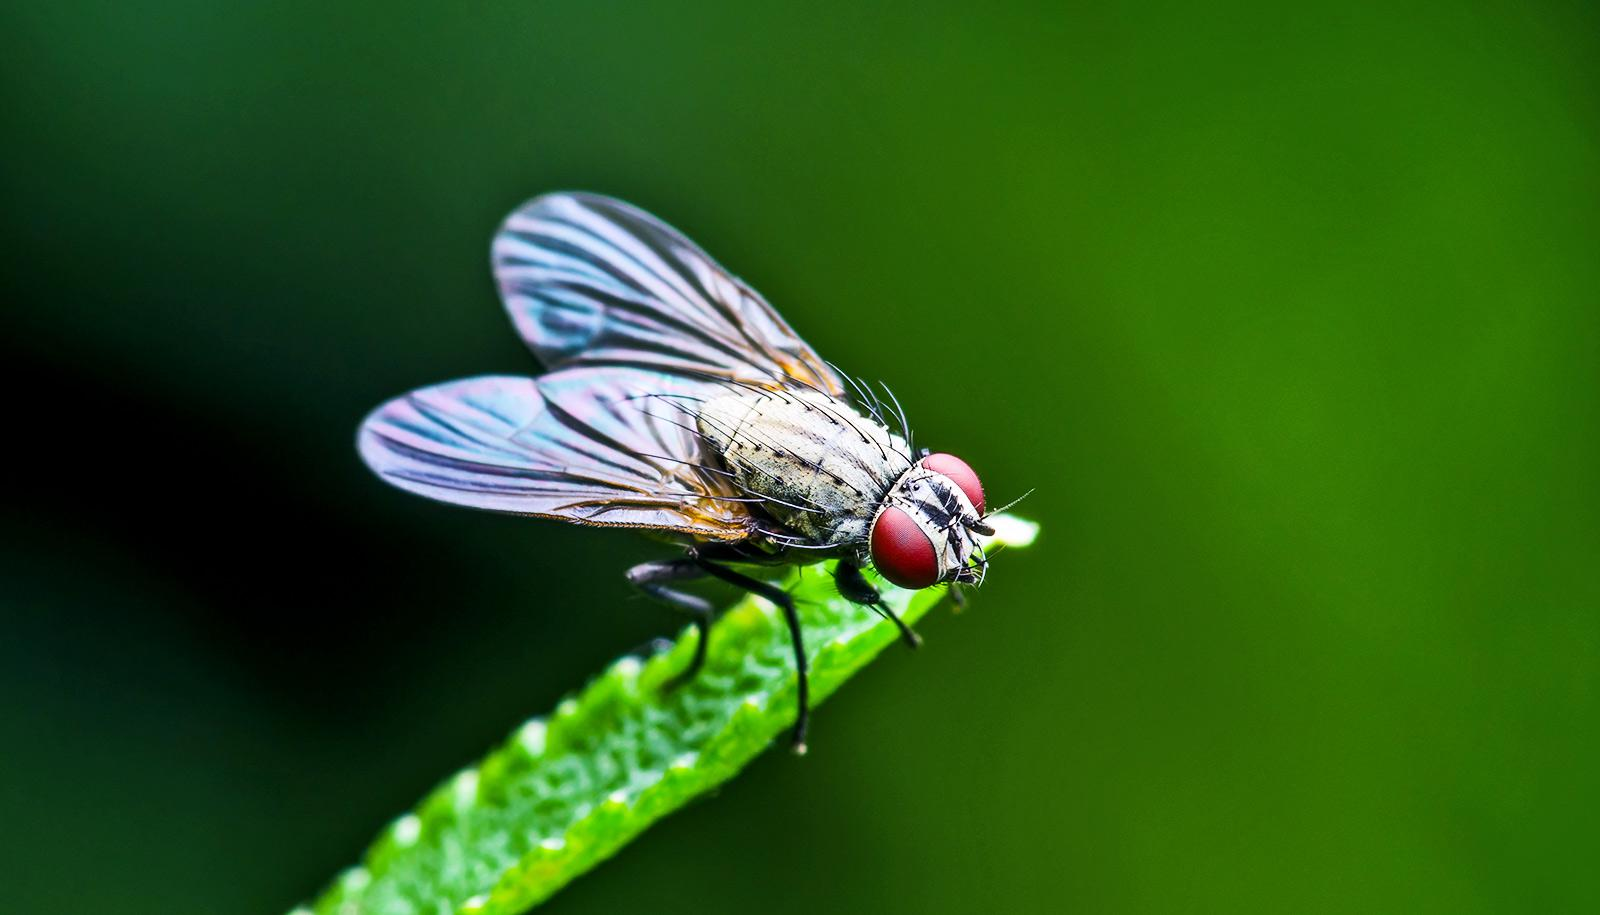 fruit fly on grass